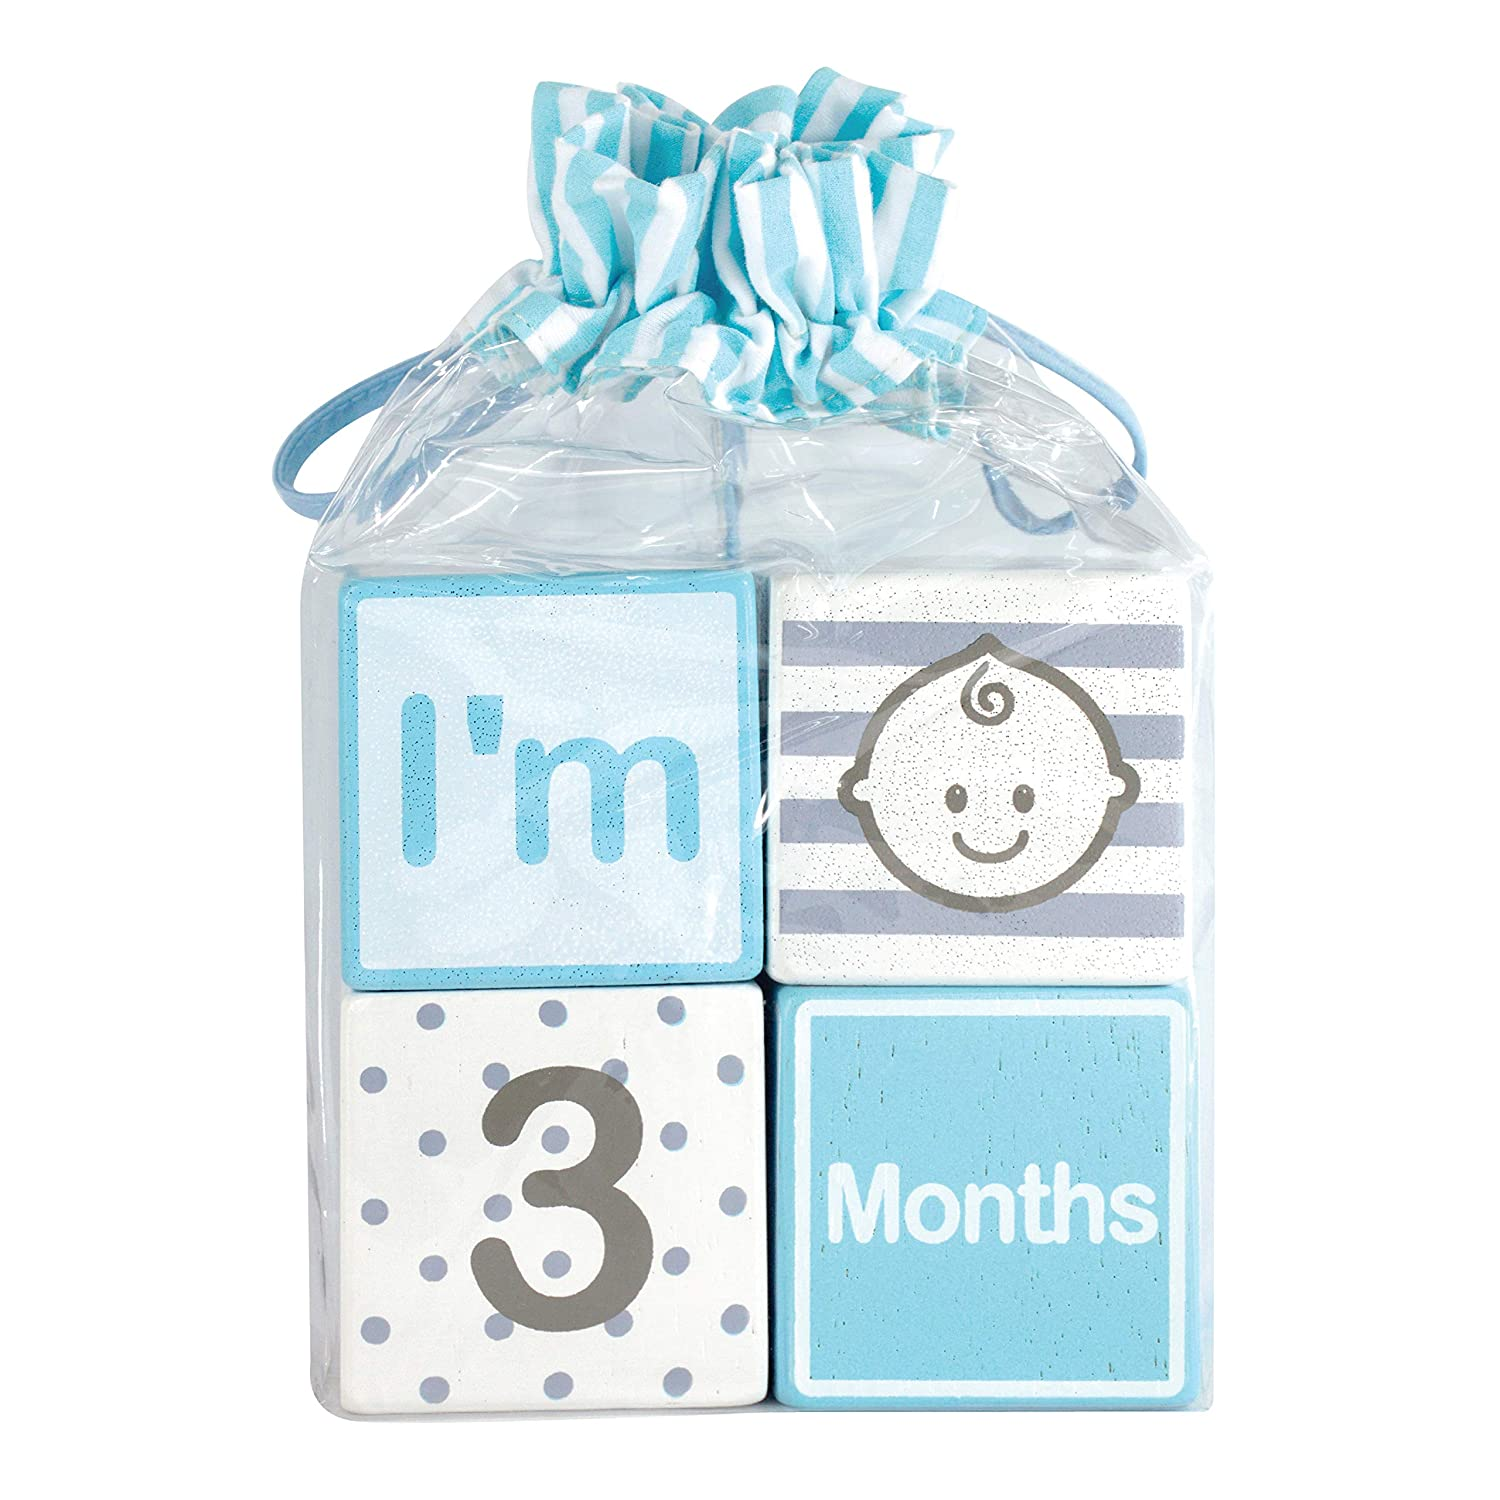 I m Solid Wood Monthly Baby Milestone Age Blocks, Newborn Gifts Keepsakes for Picture Props 4 Pcs Blue